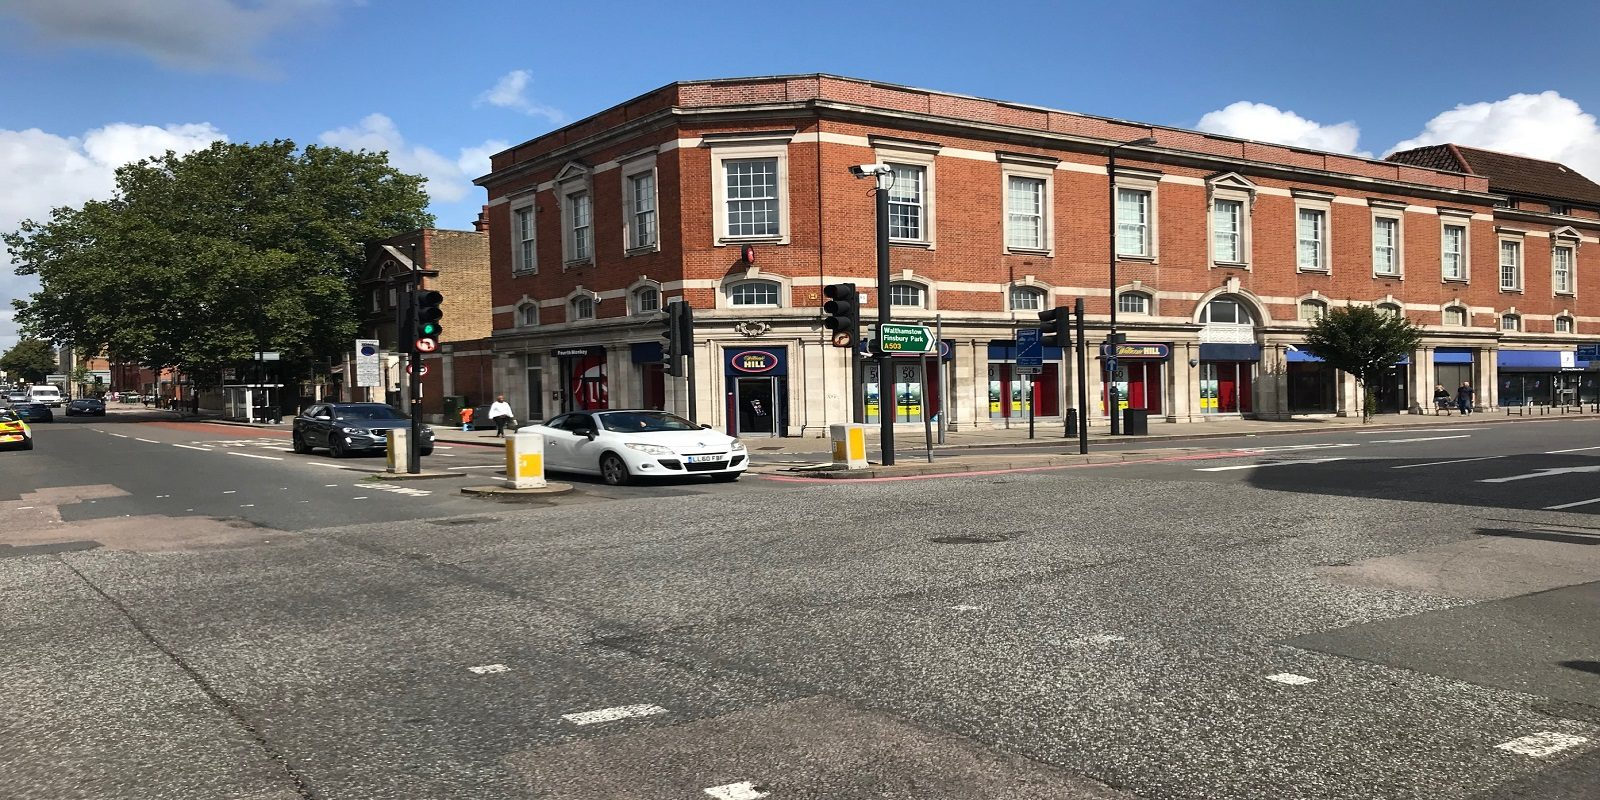 A1/A2 USE – PRIME LOCATION CORNER SHOP WITH PARKING TO LET